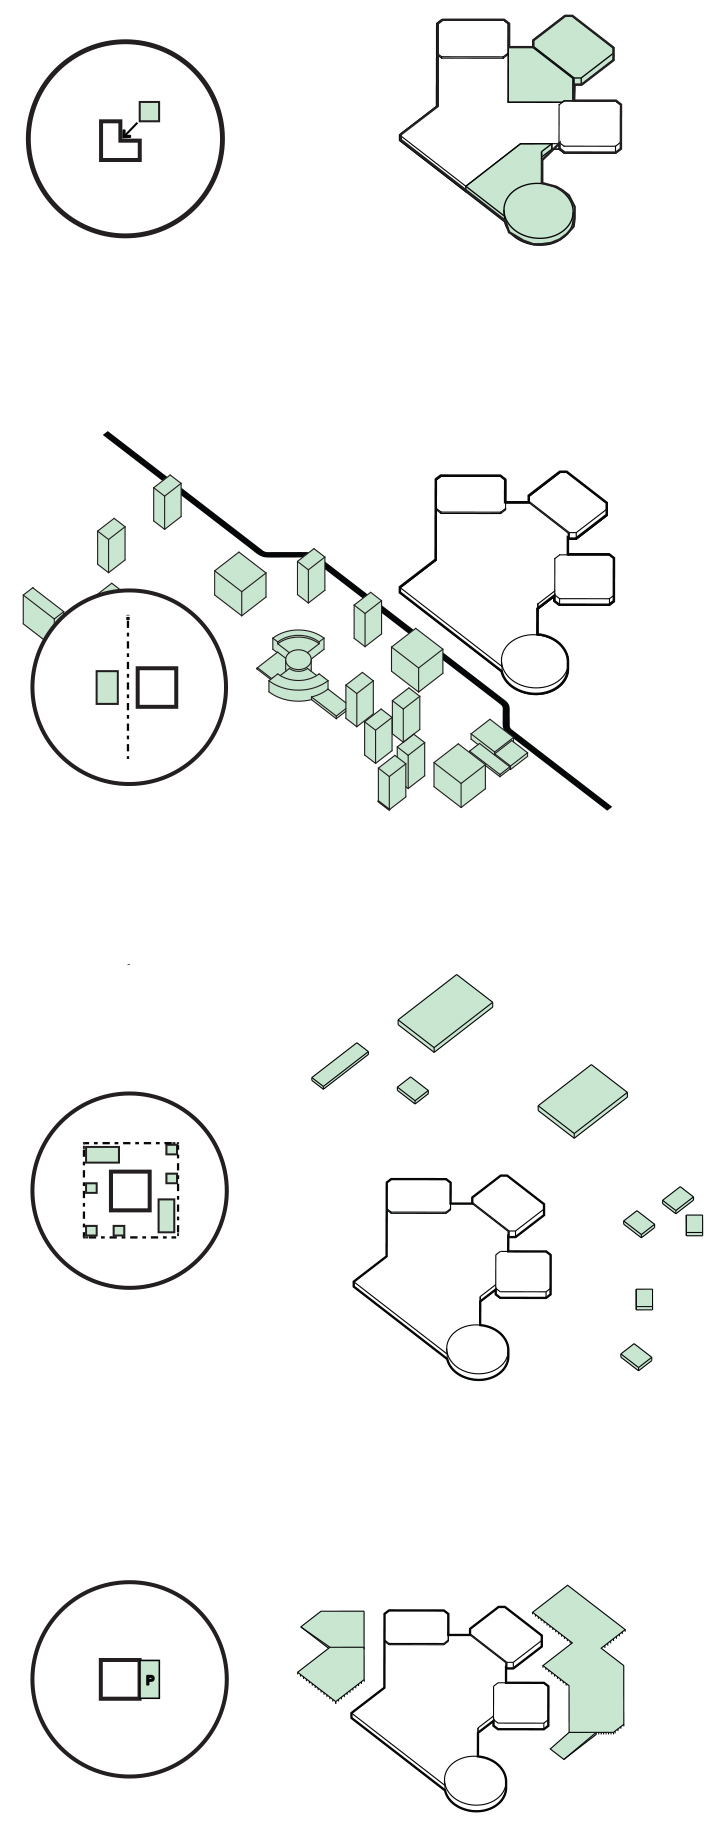 Image 12 / Mall Growth—Scarborough Agglomeration Step-by-step, 2015. Illustration by Emma Dunn, Michael Piper, and Zoe Renaud